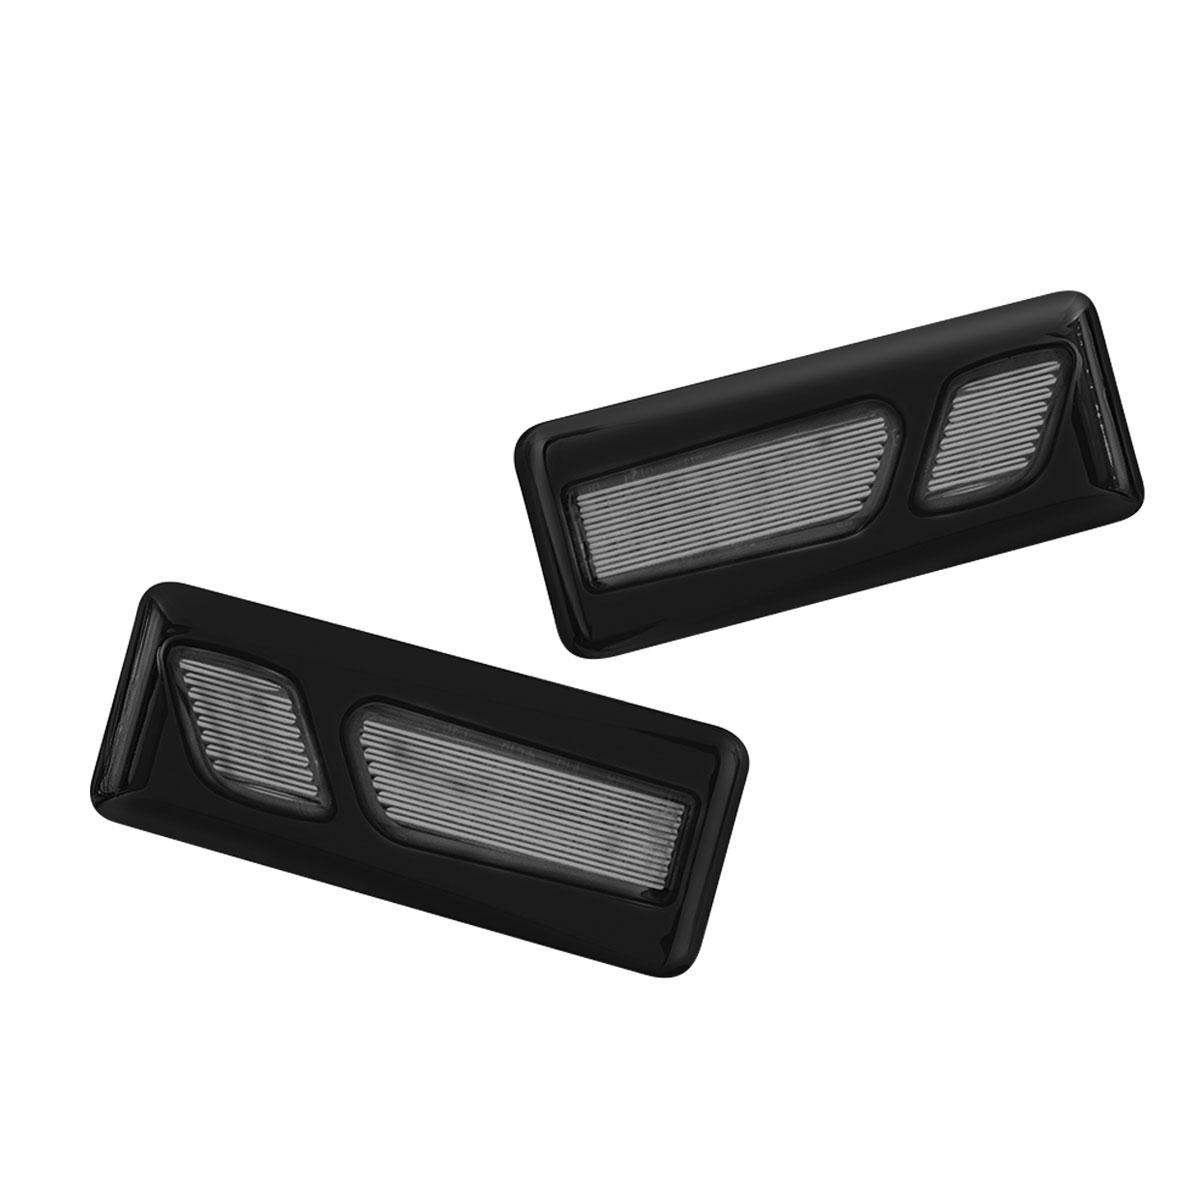 Kuryakyn Gloss Black LED Front Reflector Conversion